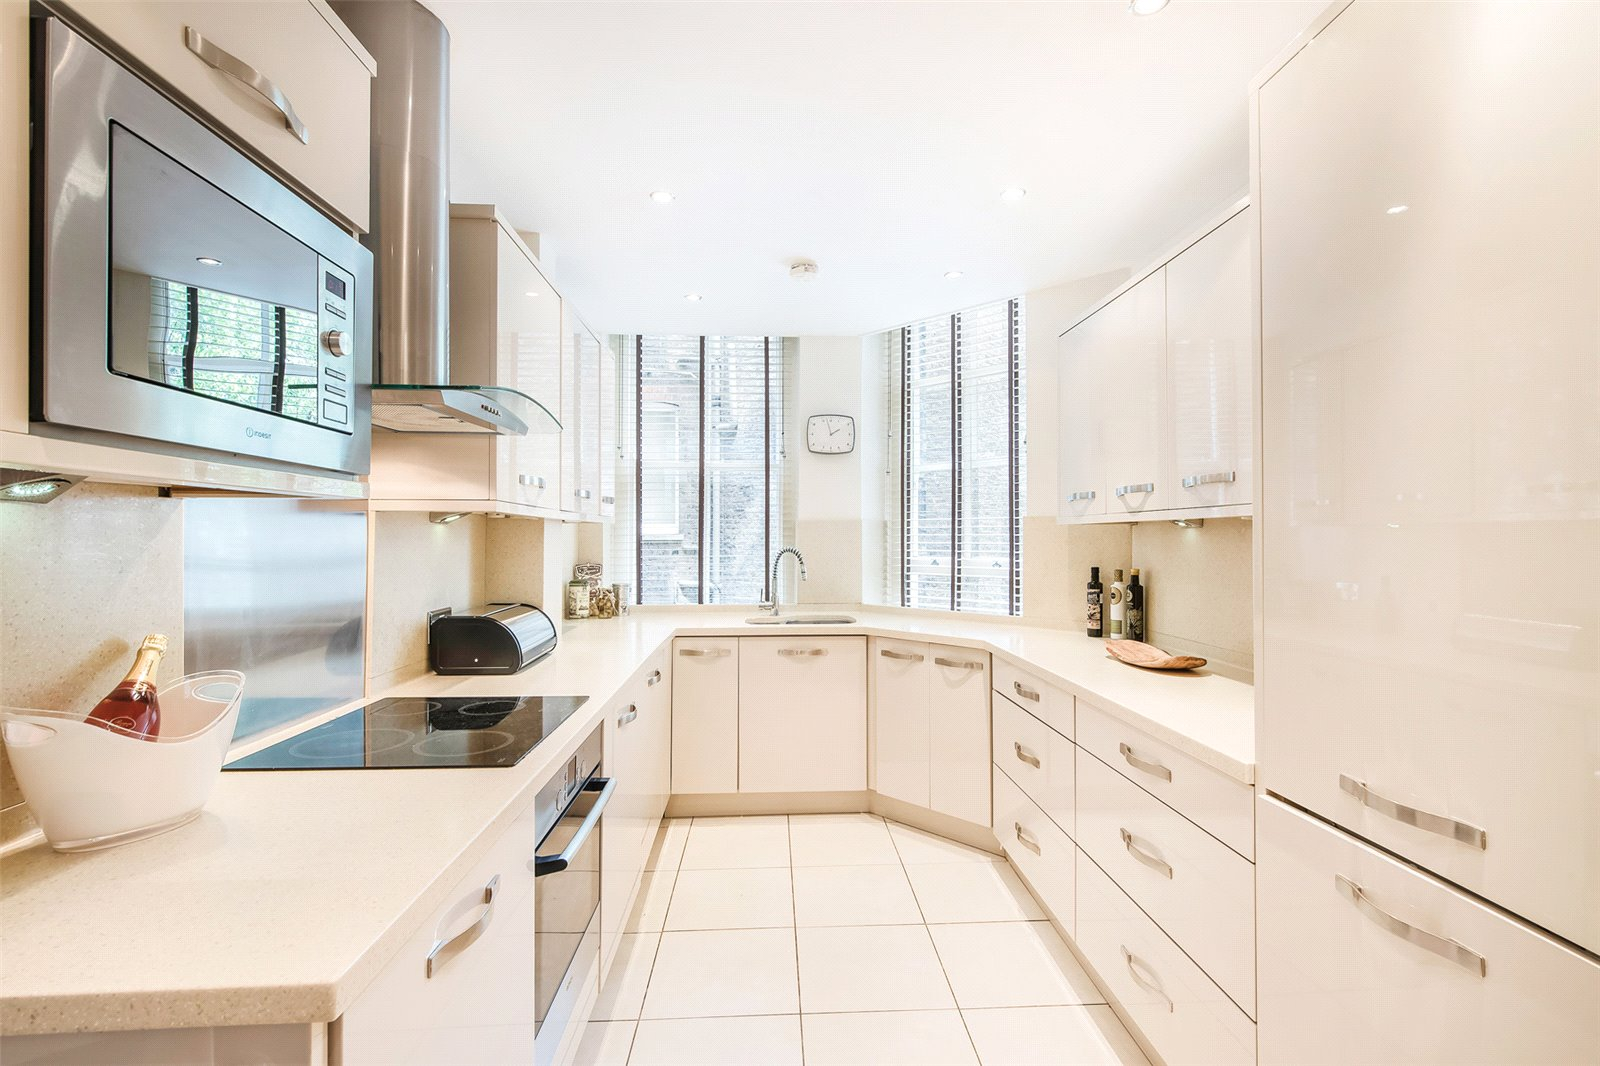 Apartment for Rent at Lincoln House, Basil Street, Knightsbridge, London, SW3 Lincoln House, Basil Street, Knightsbridge, London, SW3